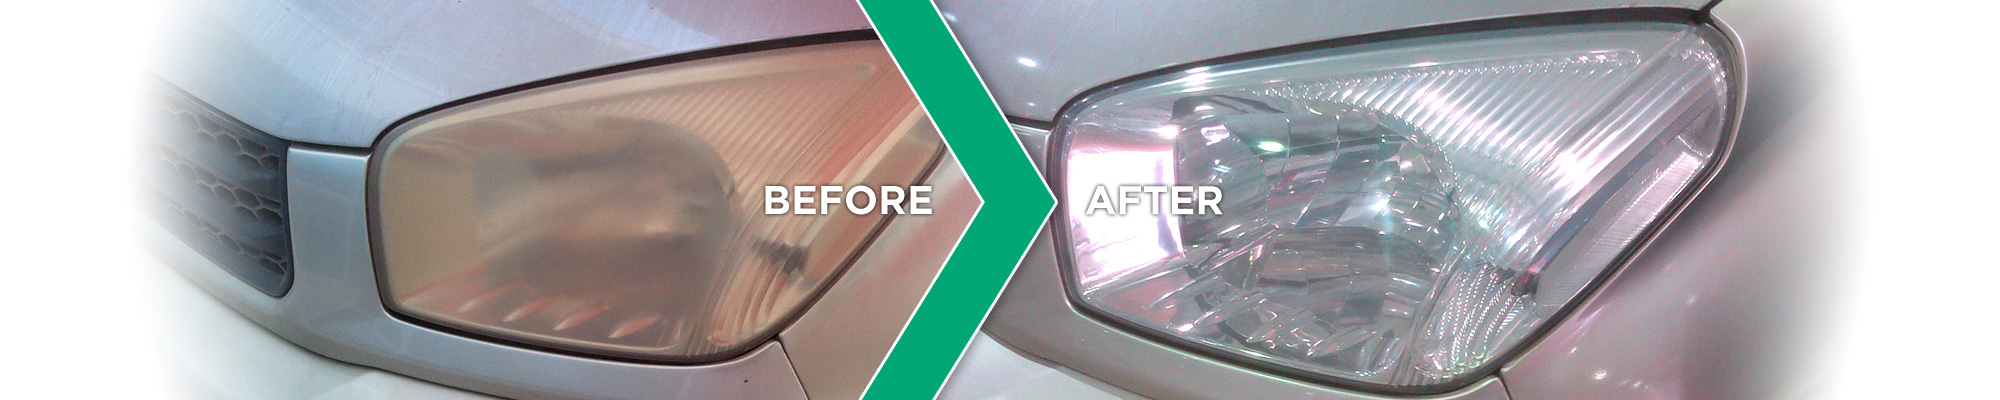 headlight-repair-green1